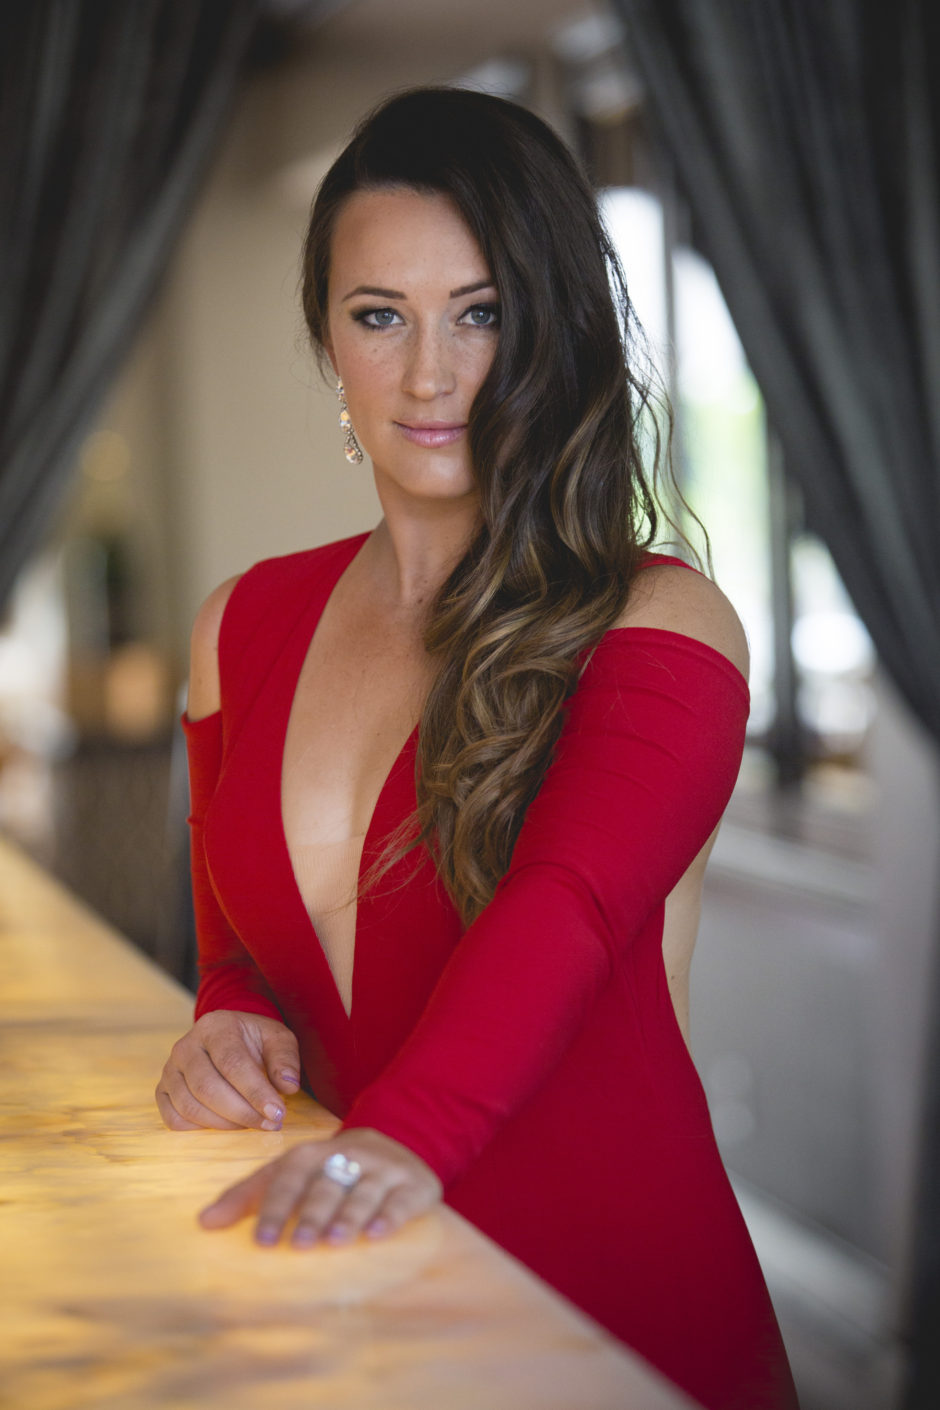 Sara Price in a red dress standing at a bar